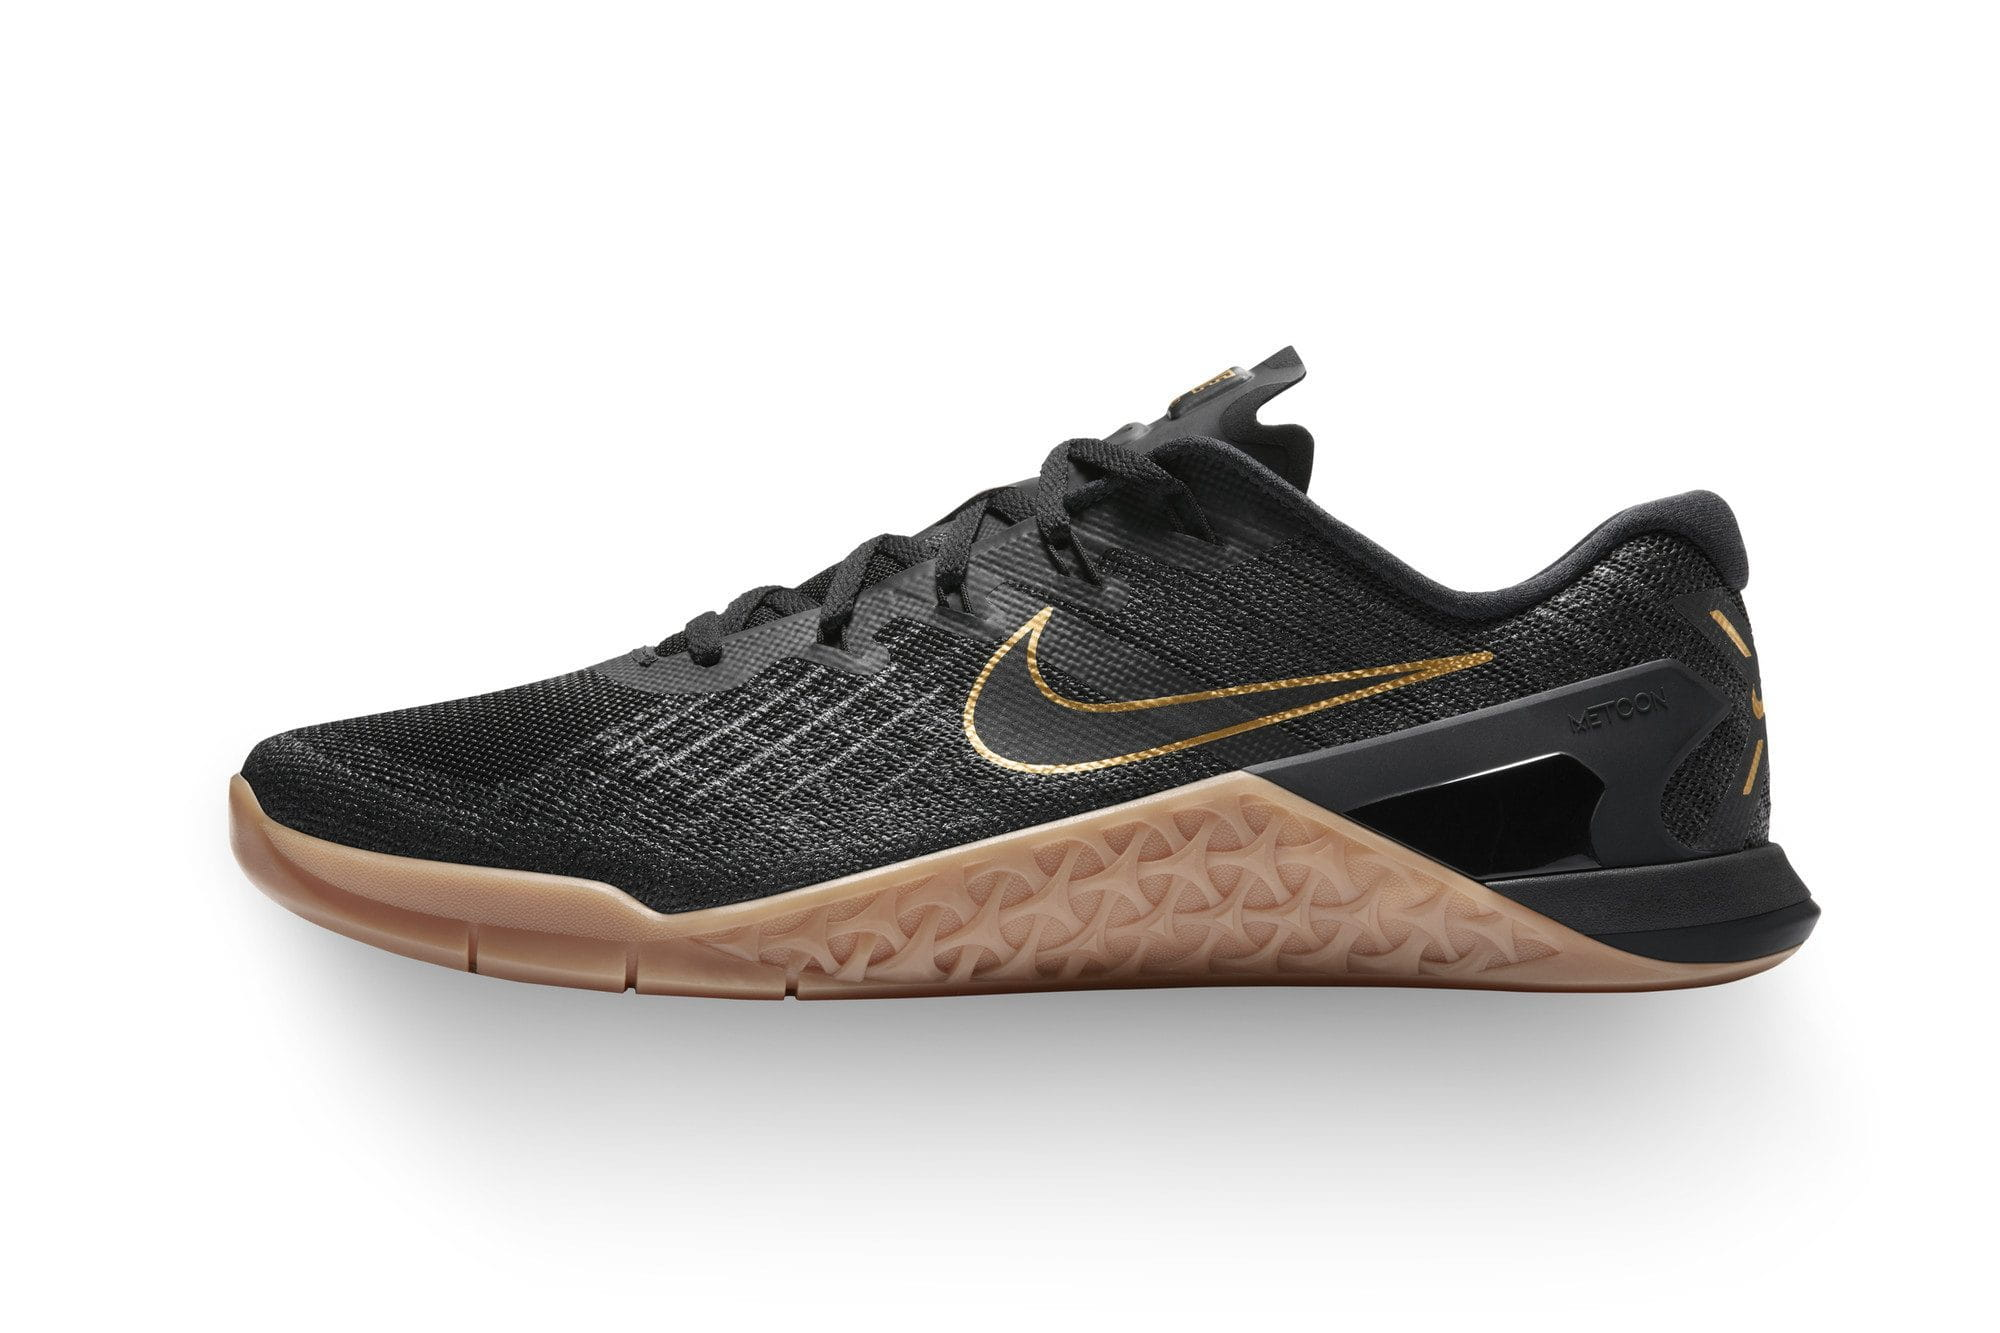 Nike Metcon 3 Black X Gold Male Training Shoe